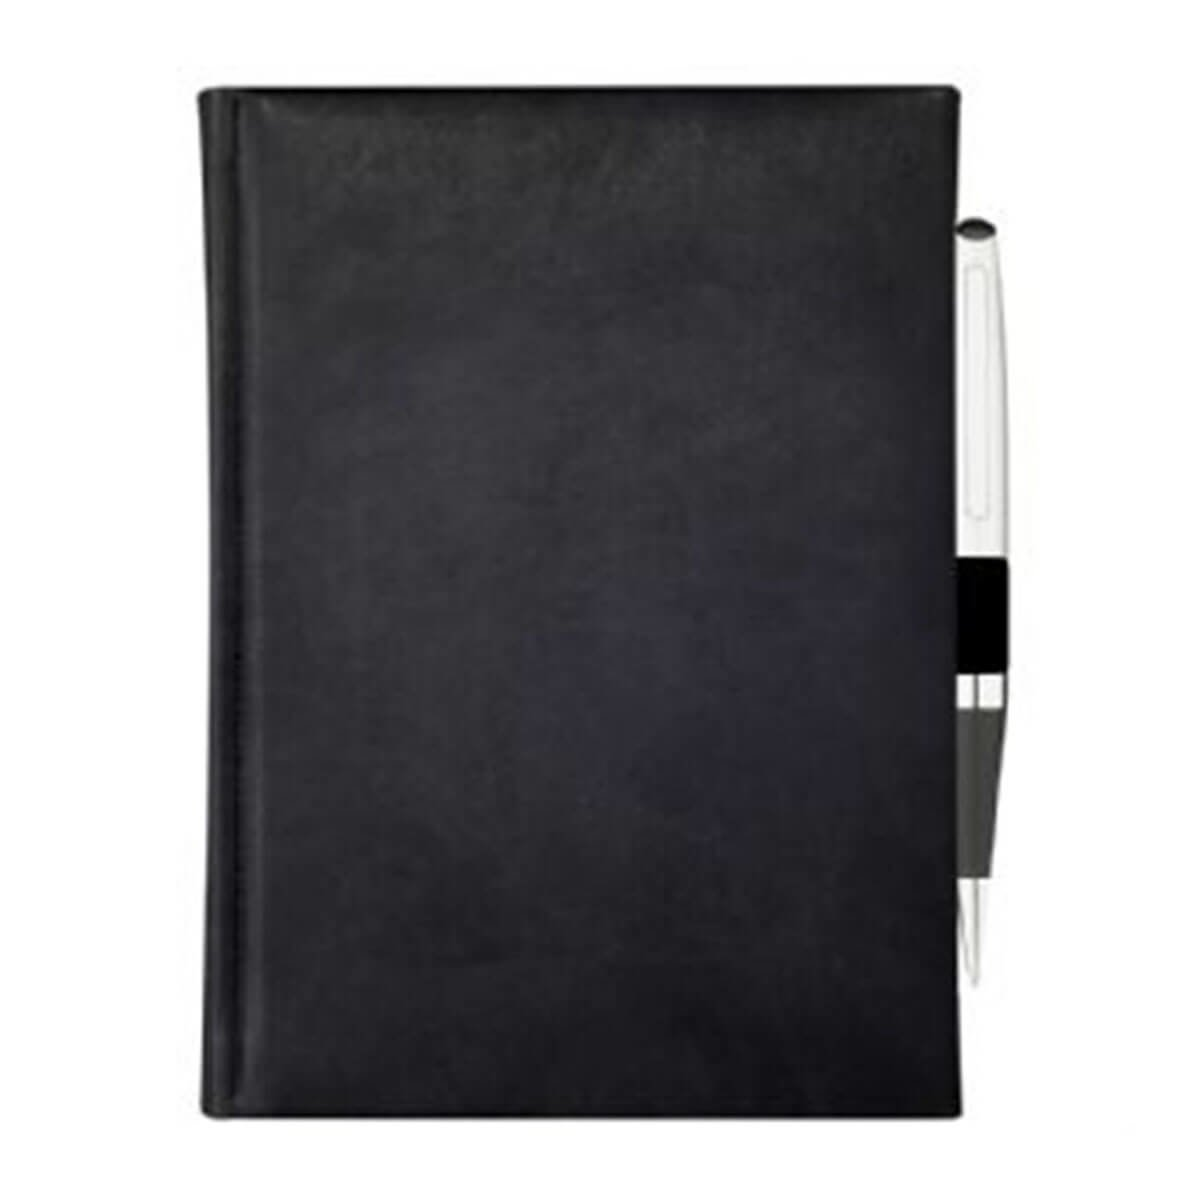 Pedova Large Bound JournalBook-Black.